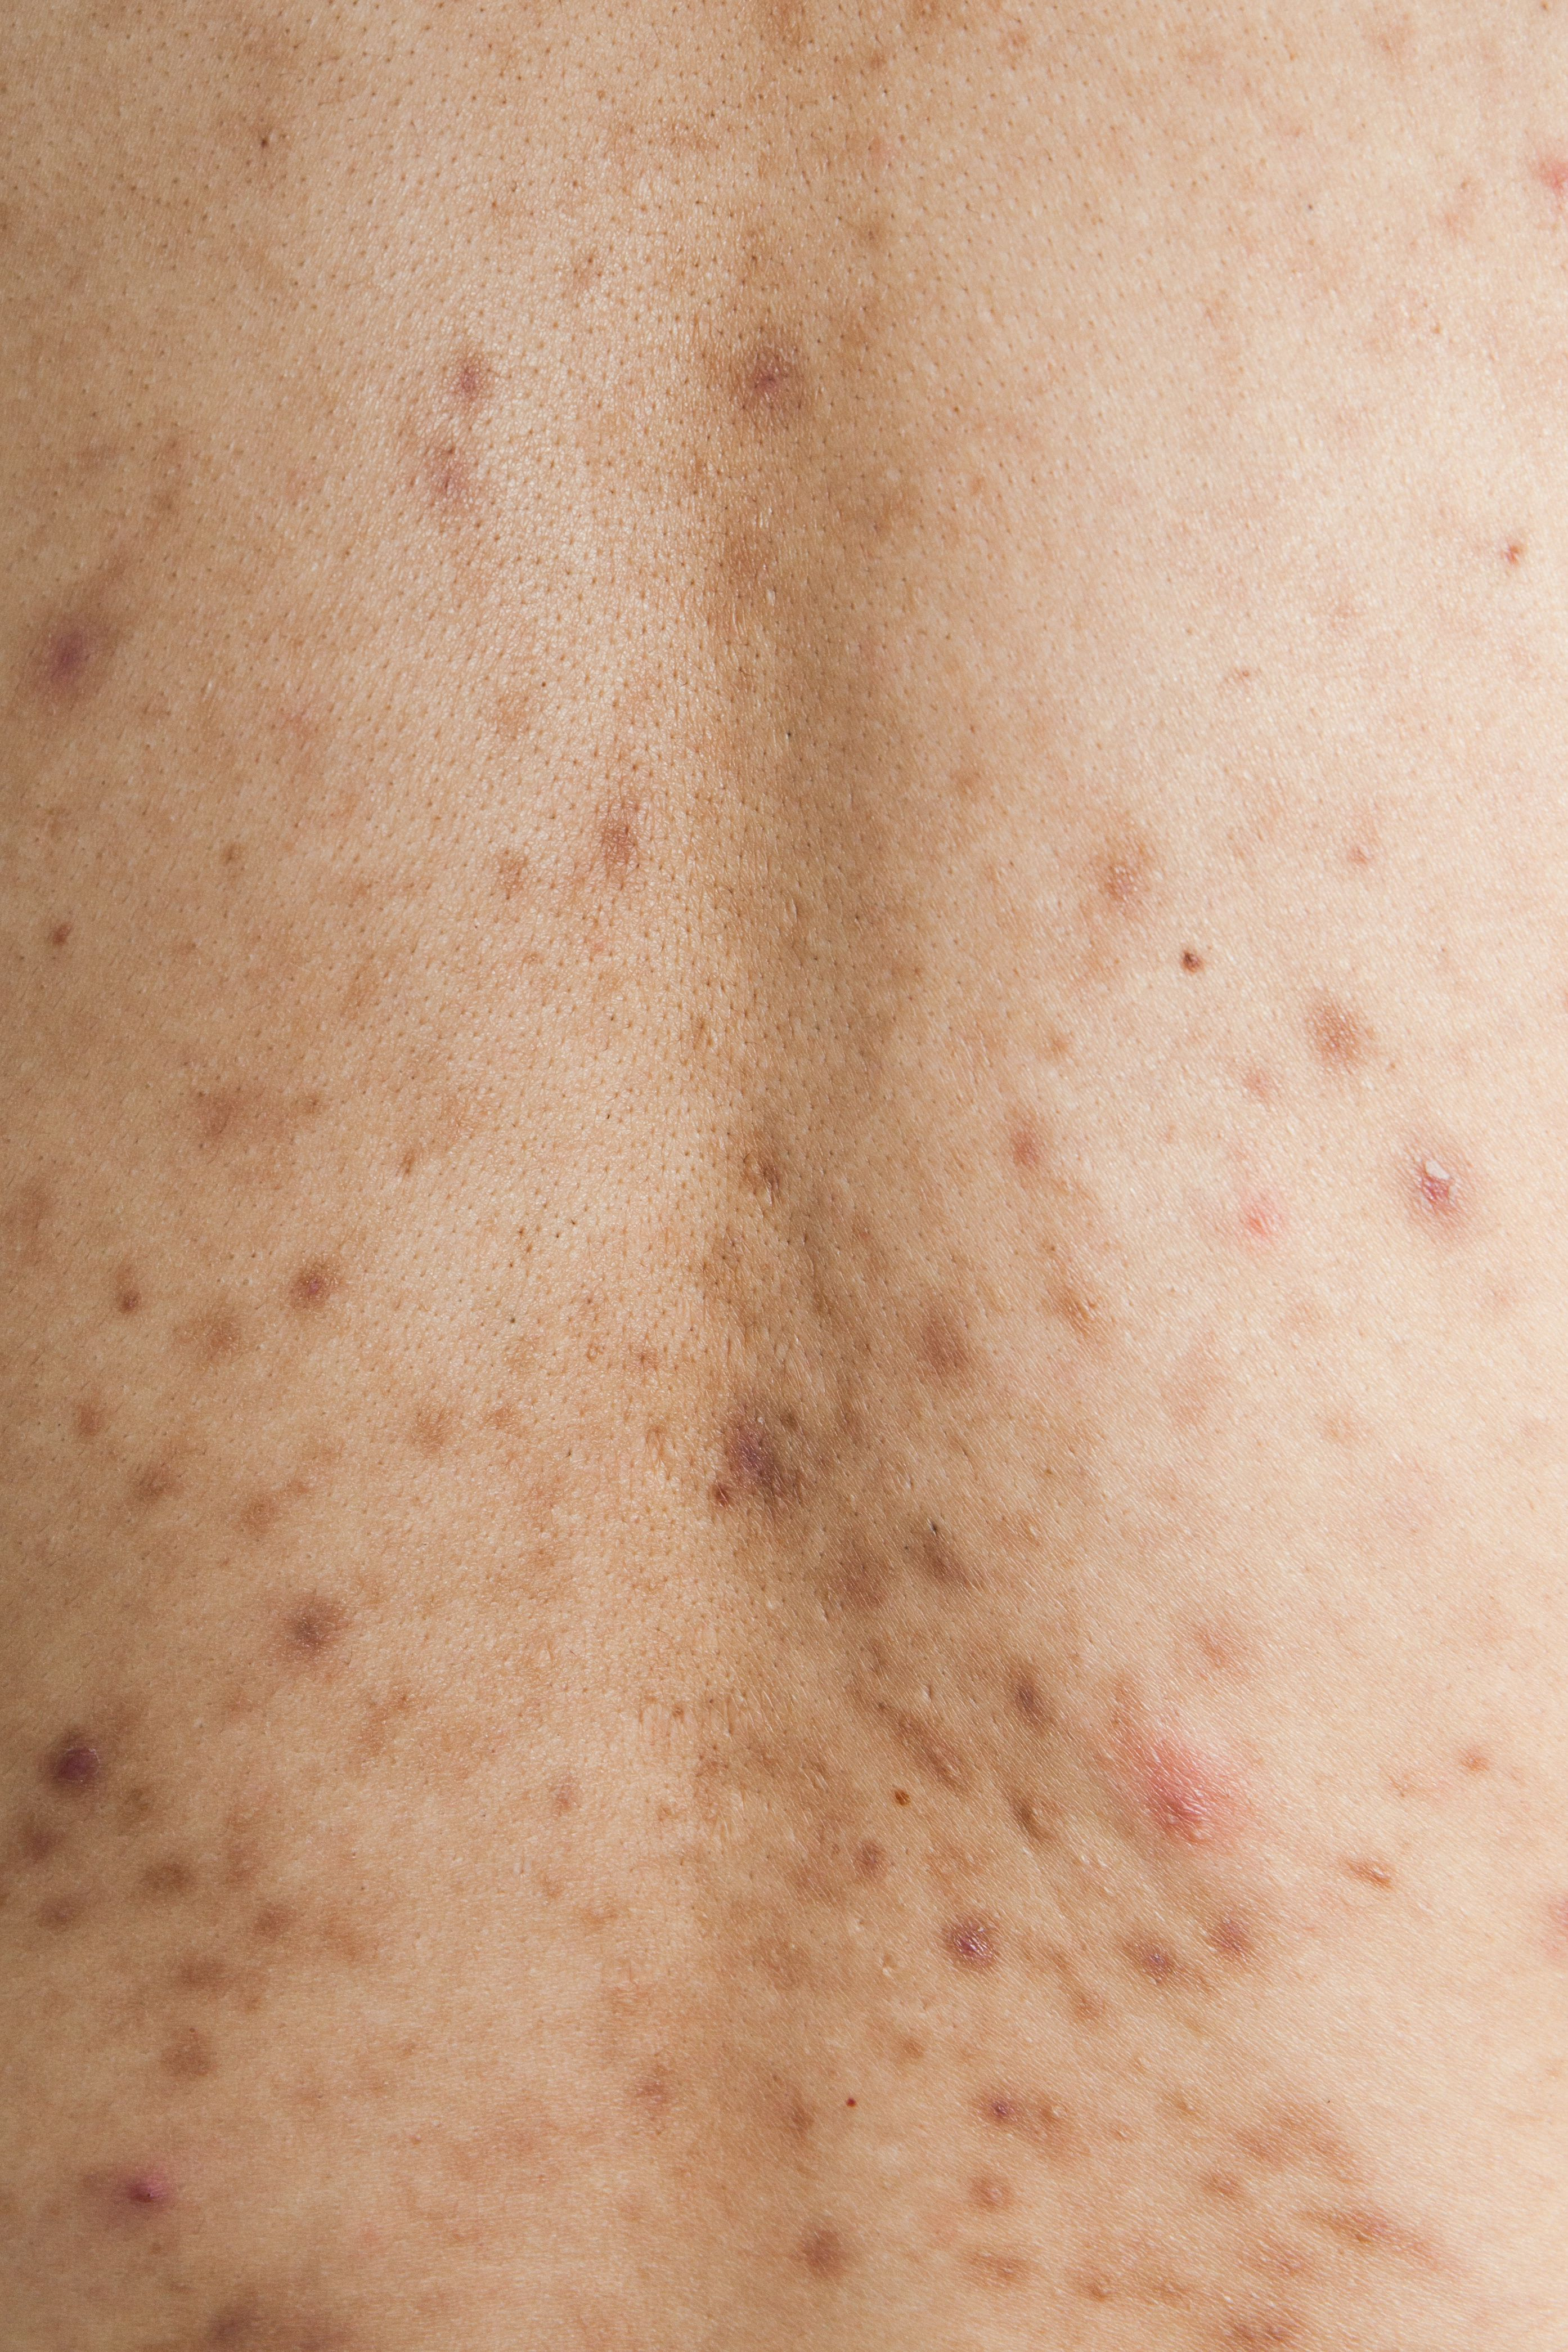 Post-Inflammatory Hyperpigmentation and Acne